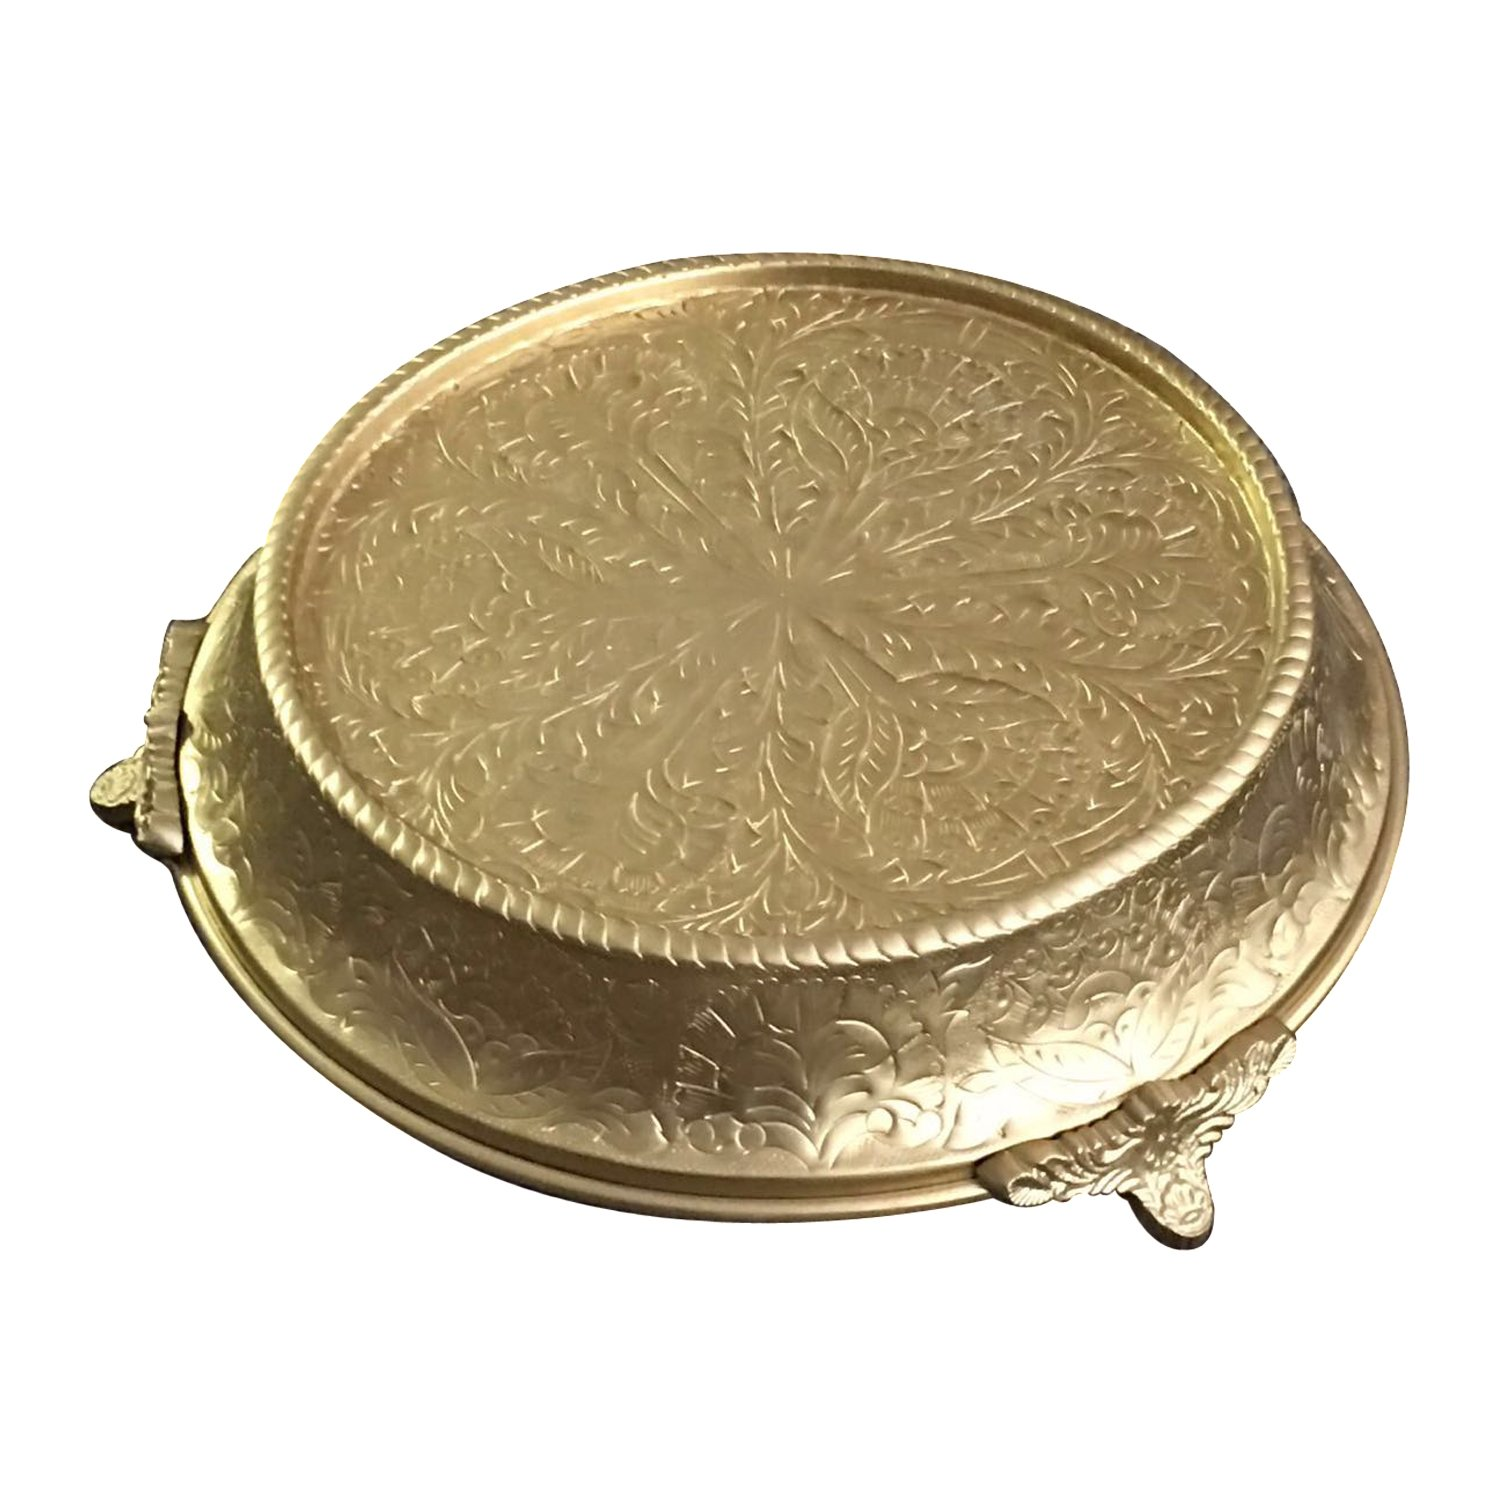 GiftBay Creations Wedding Cake Stand Tapered 16'' Round, Gold Finish, built of strong Aluminum for Multi-Layer Cake Weight. (CSG64416)